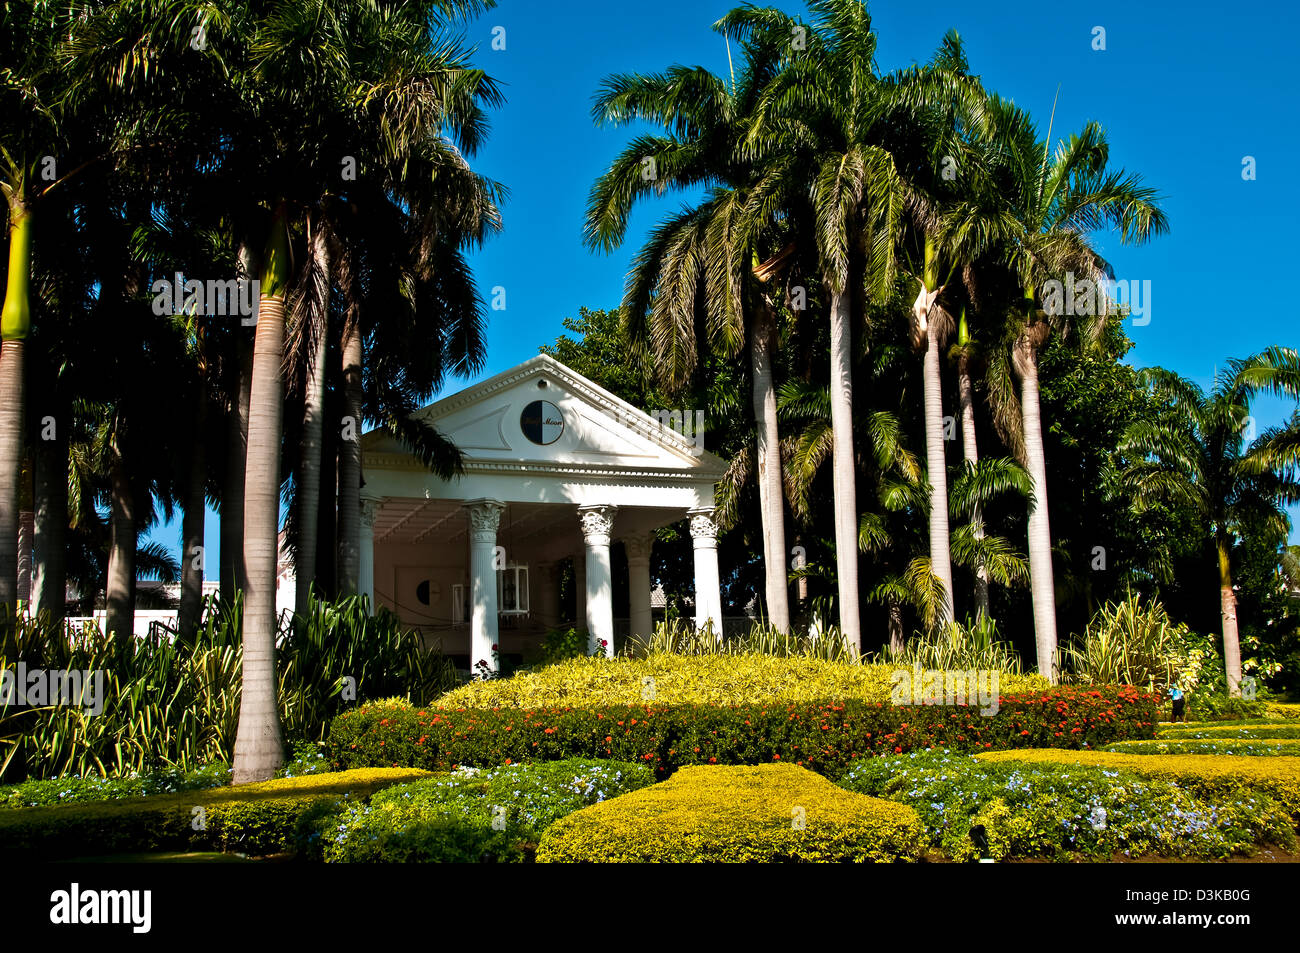 Entrance lobby building at Half Moon luxury resort, Montego Bay - Stock Image